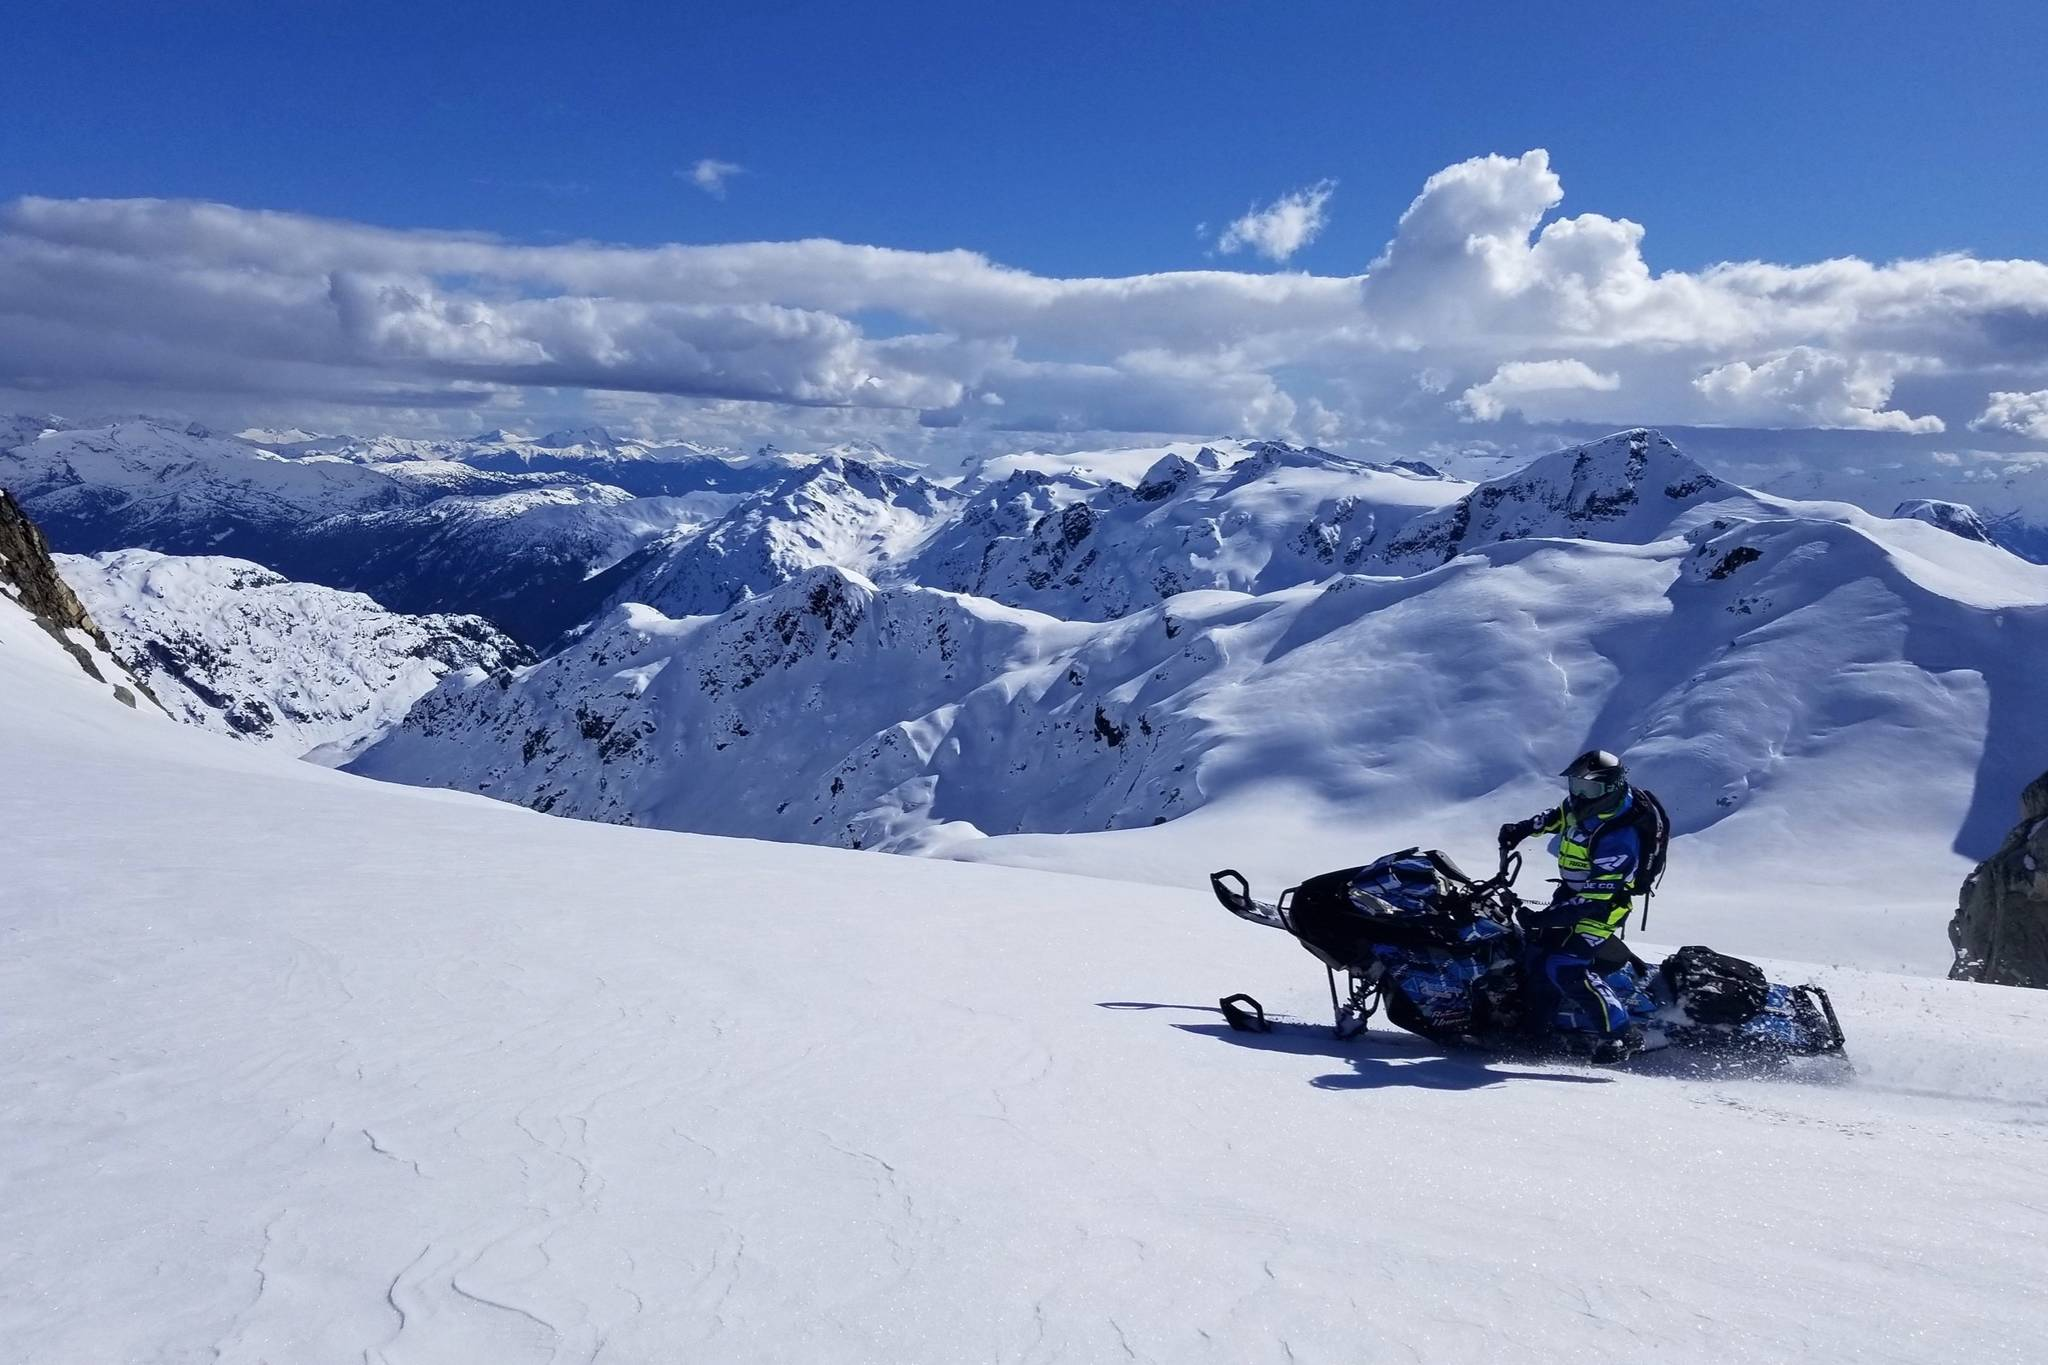 A snowmobiler enjoys the mountains in March 2019. Long, sunny days bring more people into the backcountry, but they can also impact the snowpack. Photo by Mike Conlan